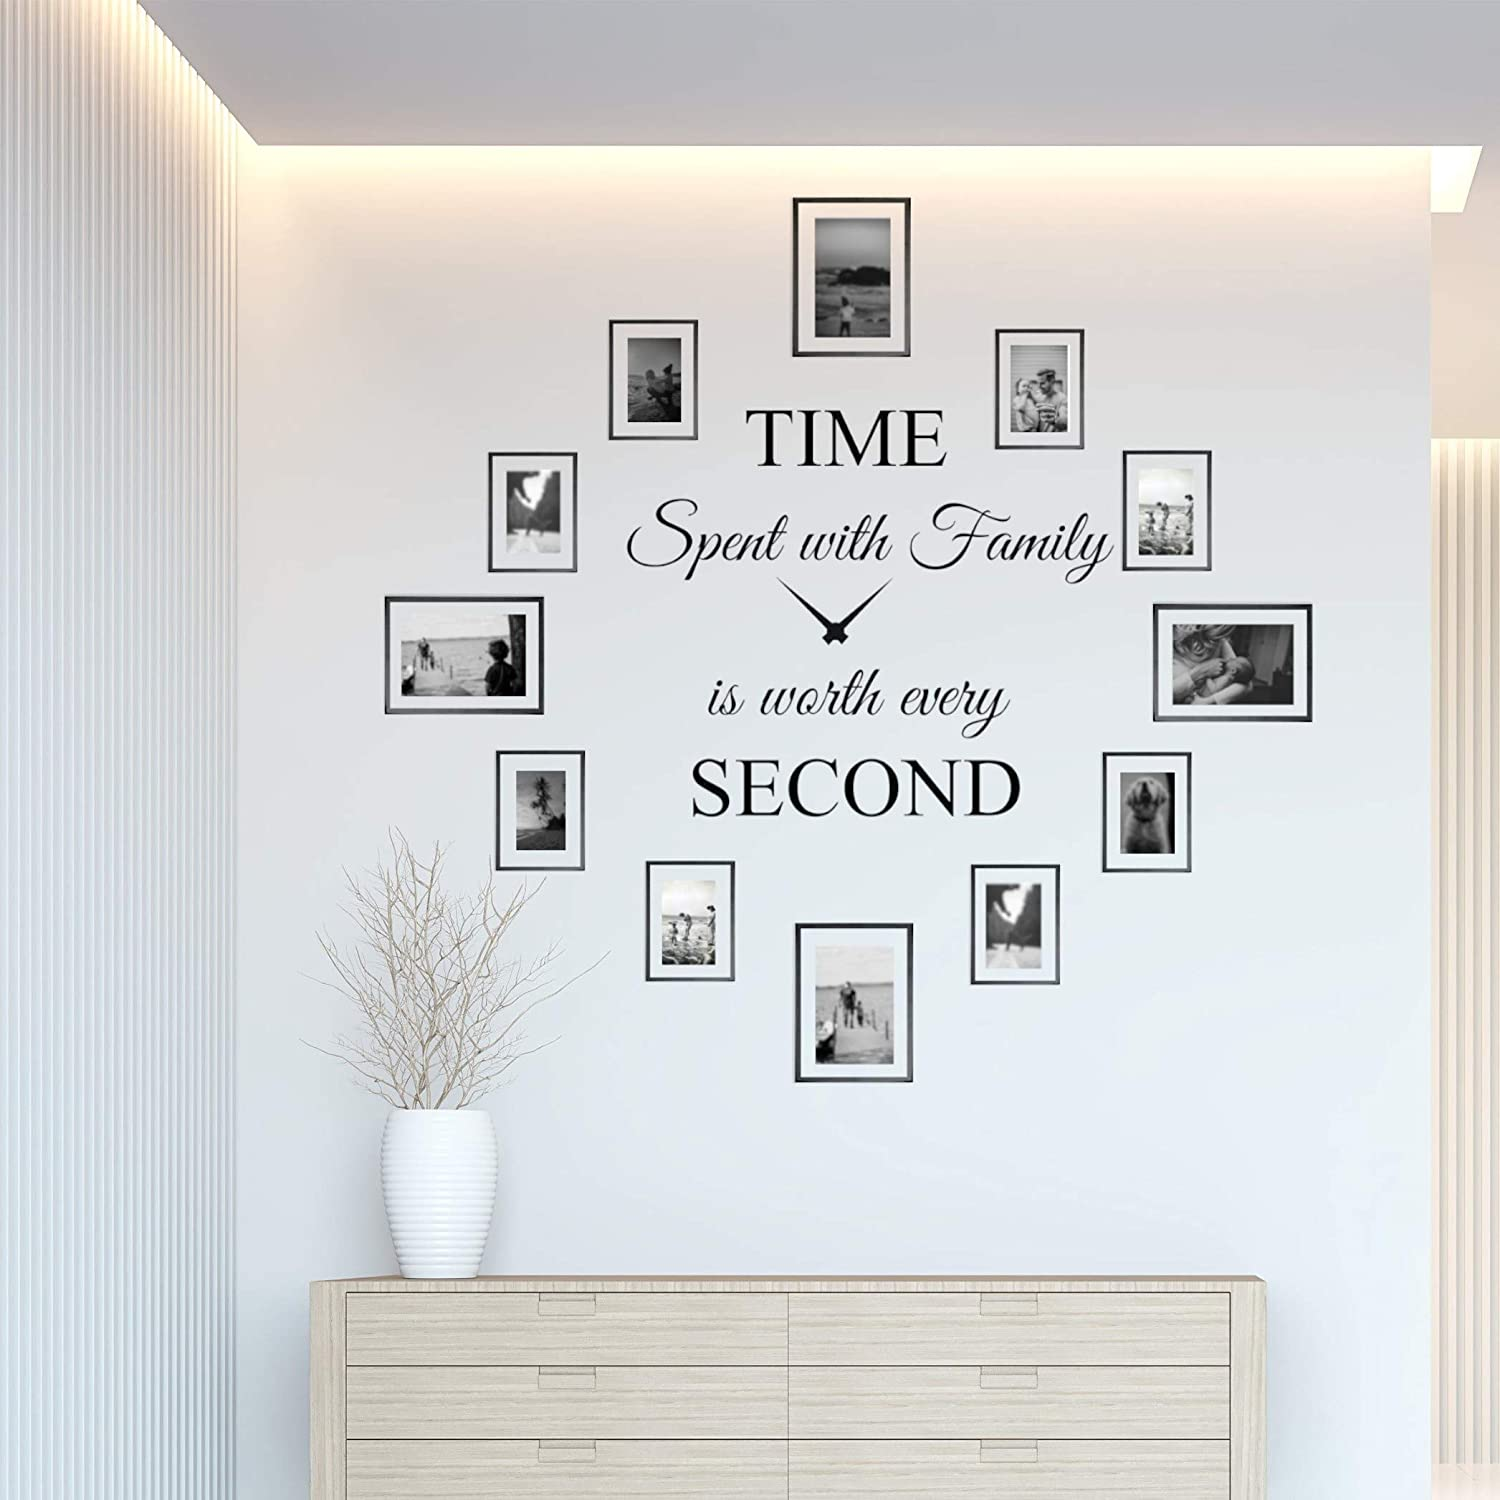 Time Spent with Family is Worth Every Second Wall Decor Clock Family Quote Saying Sticker Vinyl Wall Decal Wall Art DIY Living Room Dining Room The Photo Frames not Included (22Wx22L) Matte Black)